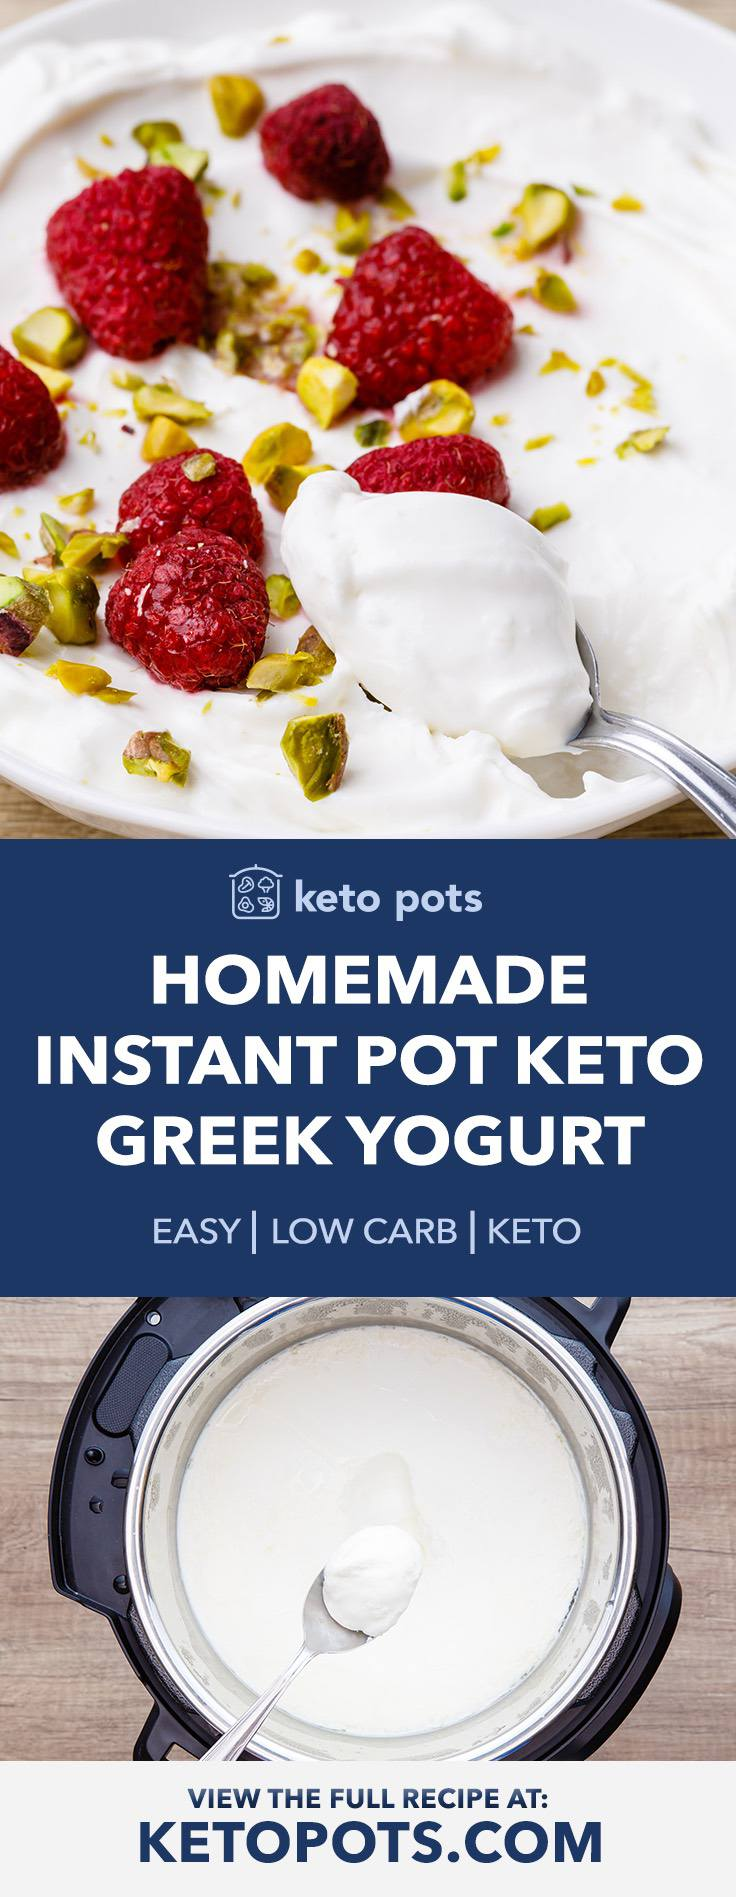 Easy Homemade Instant Pot Keto Greek Yogurt